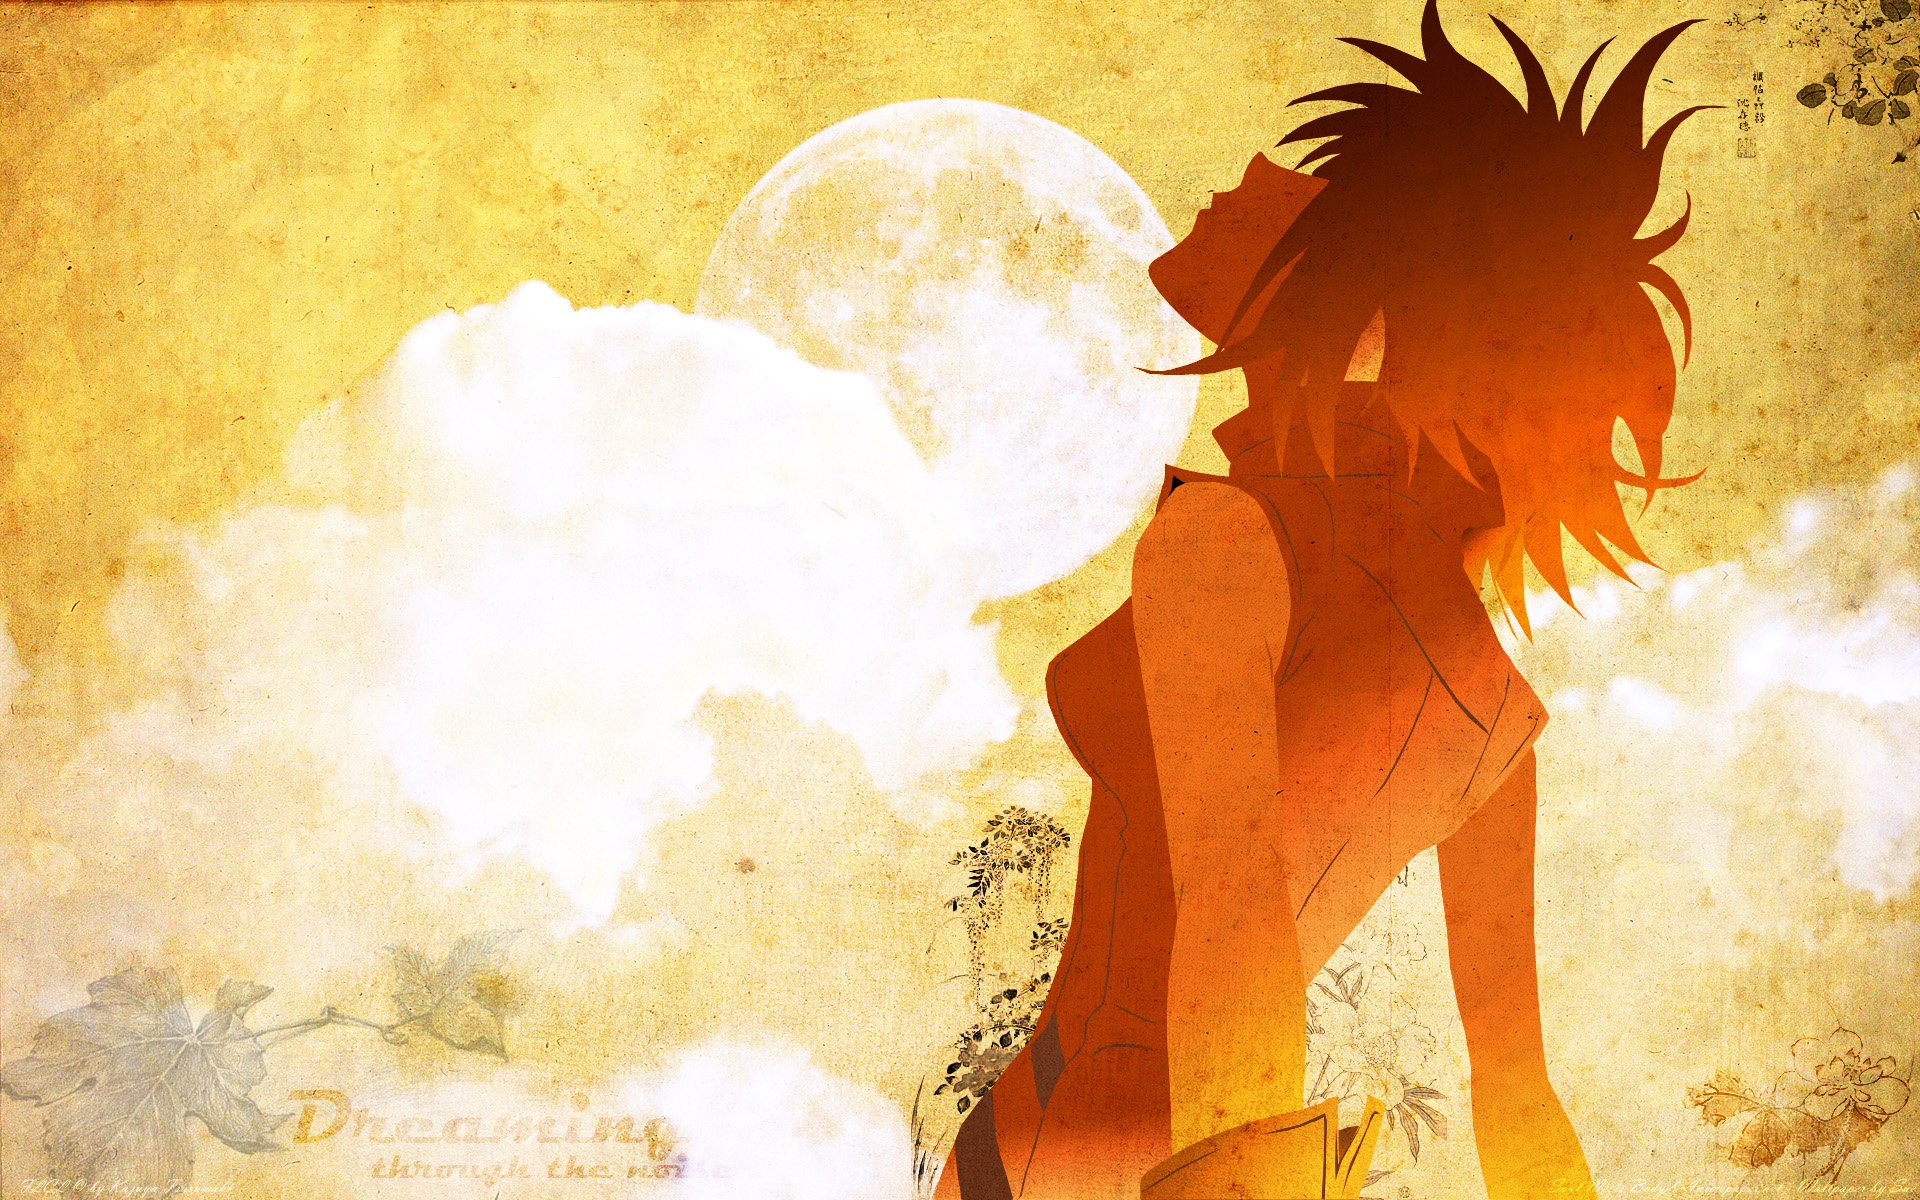 Free FLCL high quality wallpaper ID:339519 for hd 1920x1200 computer